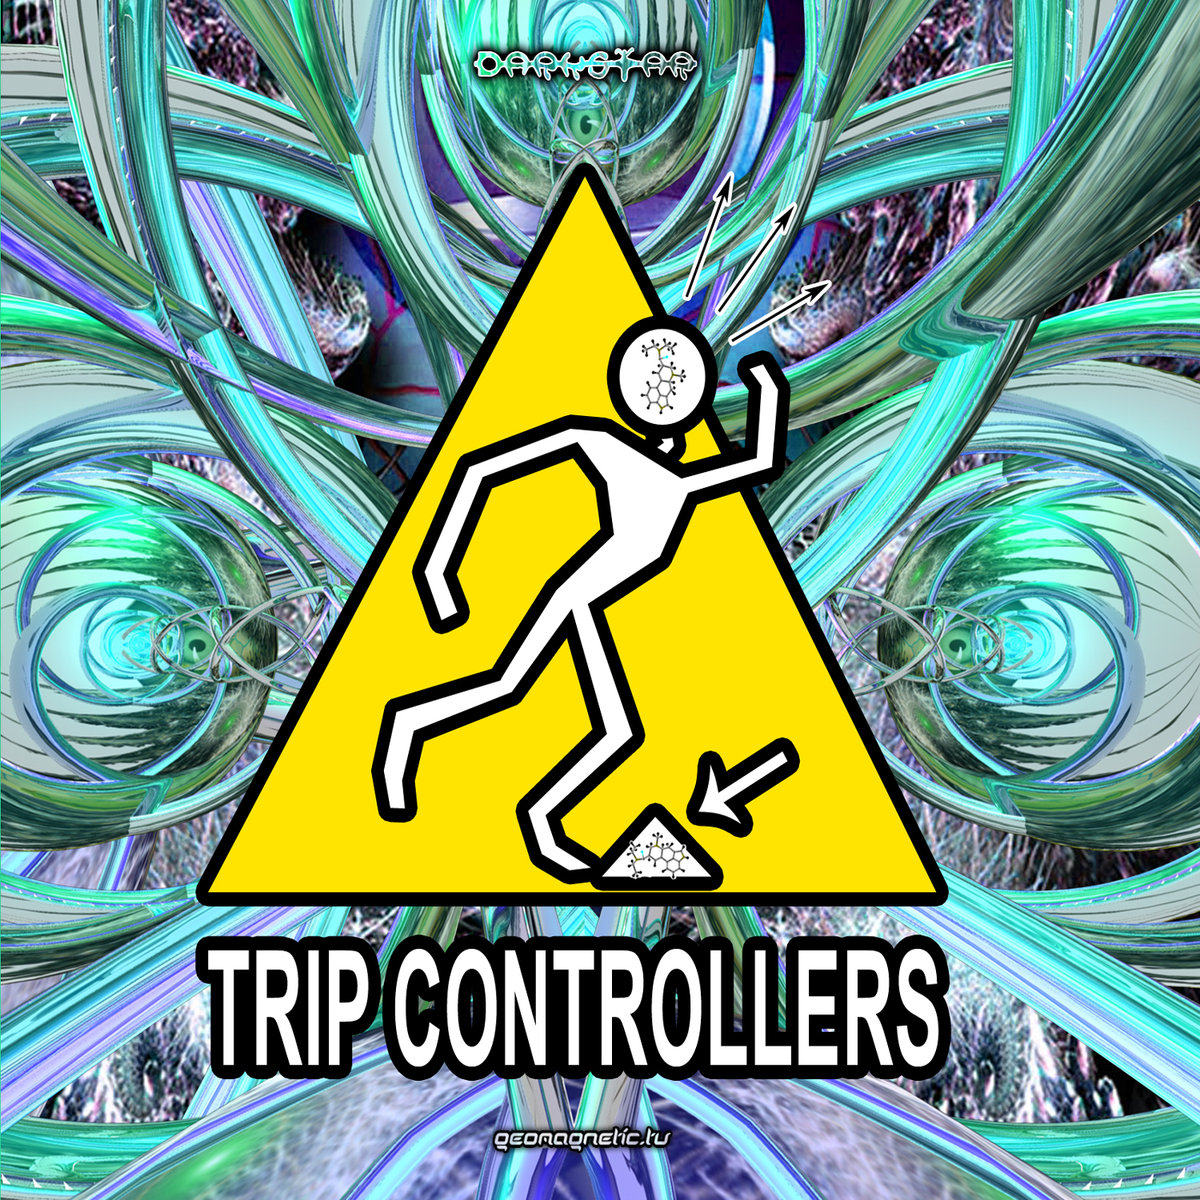 Wicked Wires vs. Brain Hunter - Don't Panic @ 'Various Artists - Trip Controllers (Compiled by Dr. Spook)' album (electronic, goa)